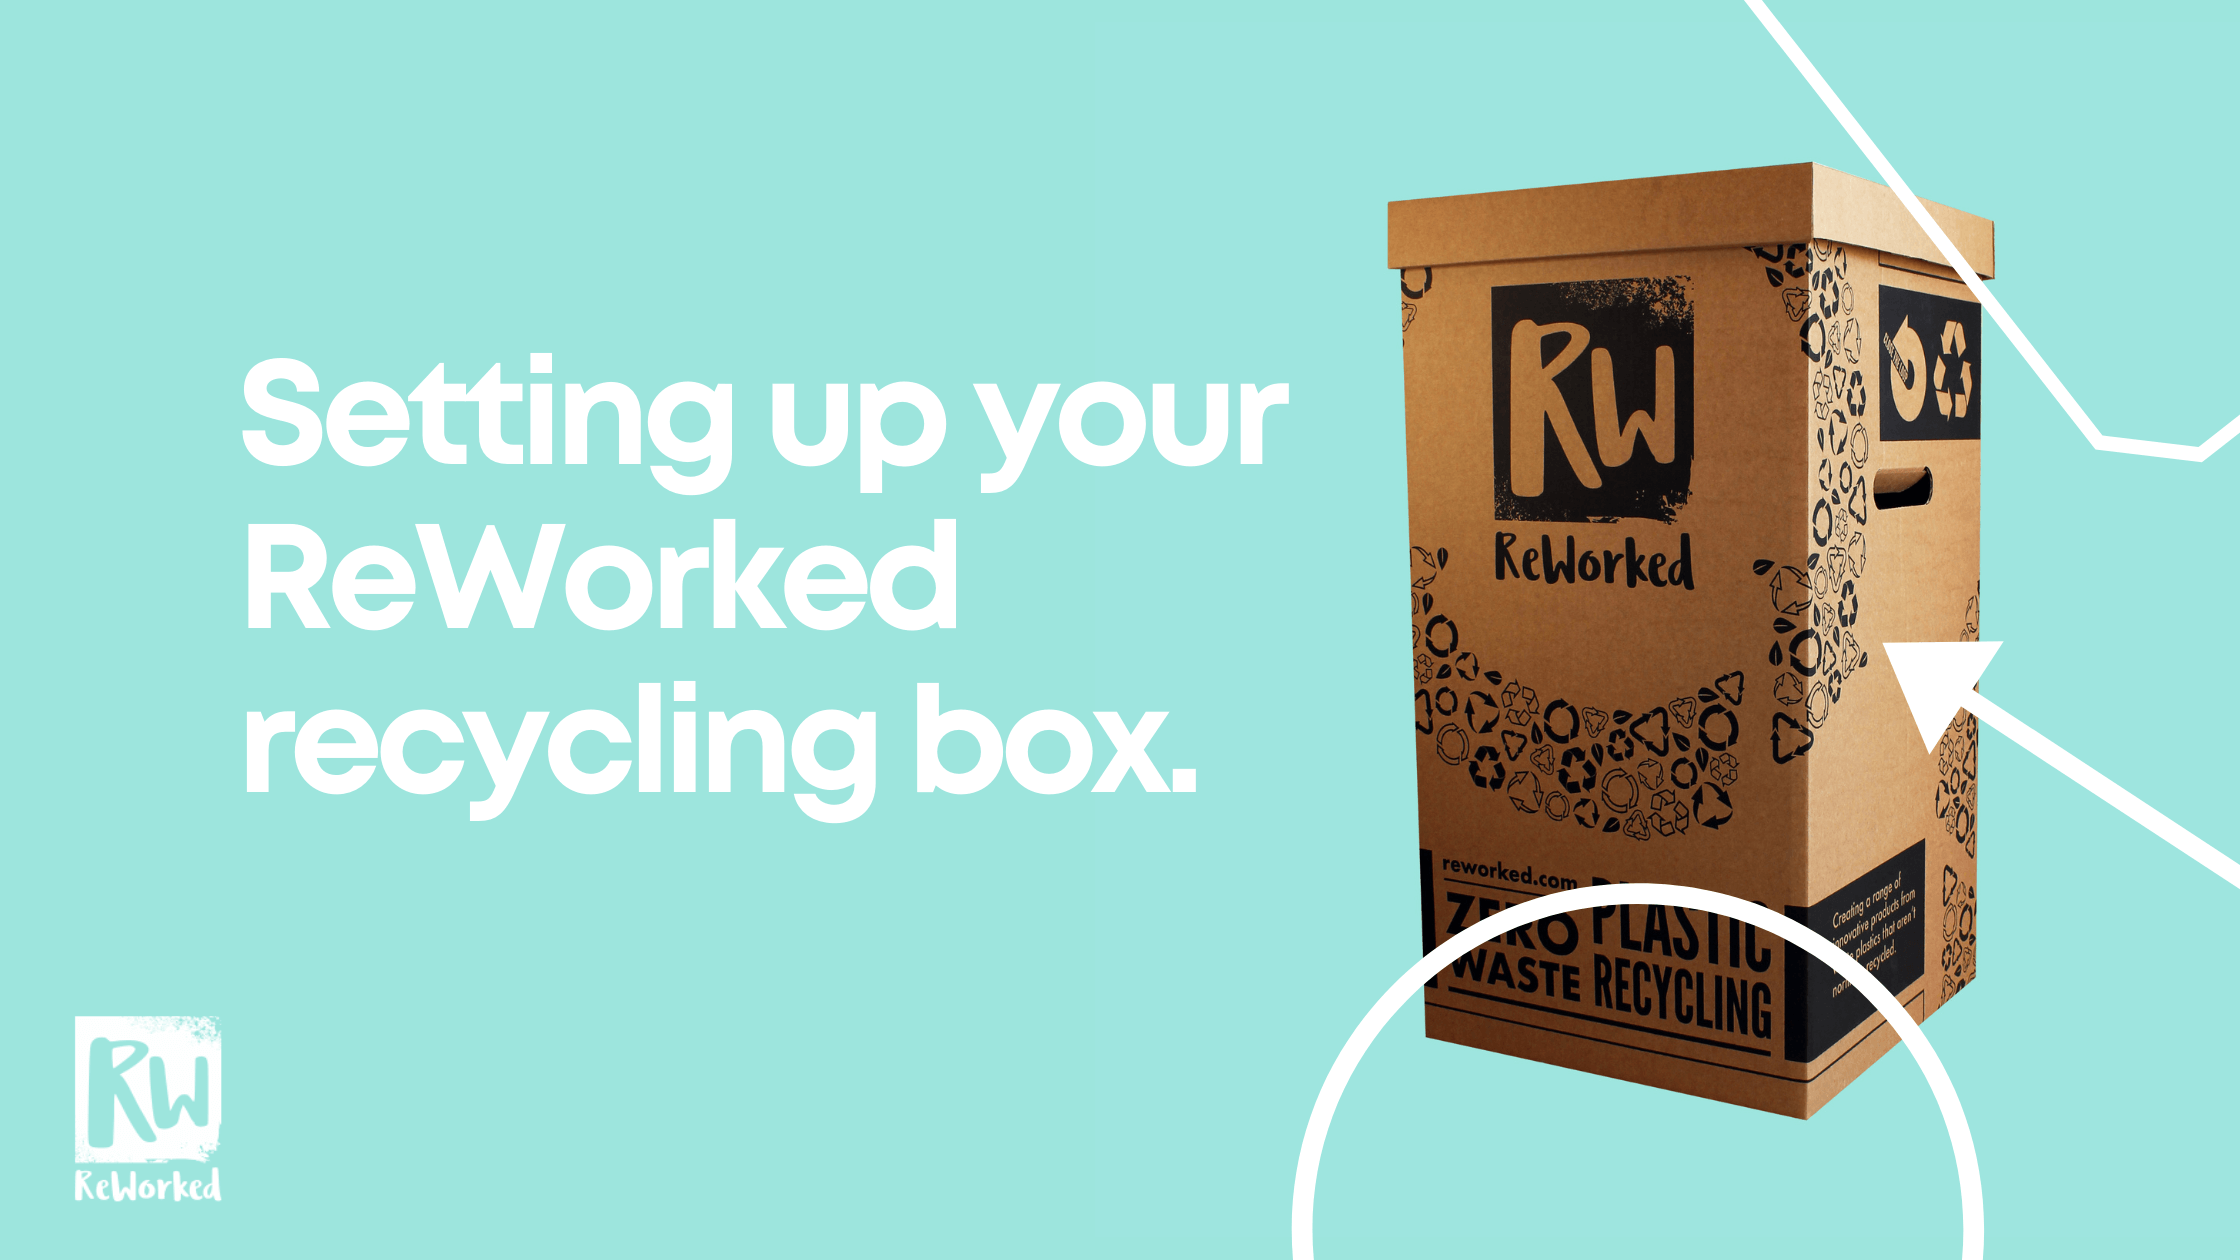 Setting up your ReWorked recycling box